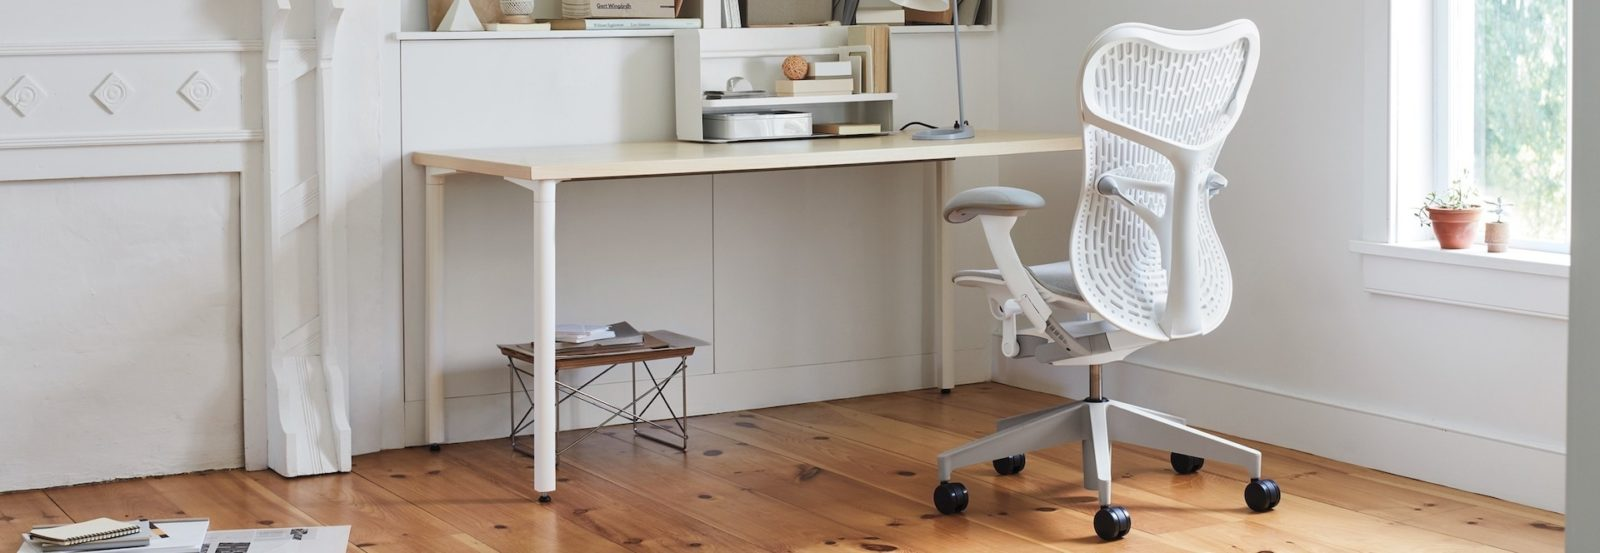 work from home manchester boston herman miller ergonomic desk tools chairs